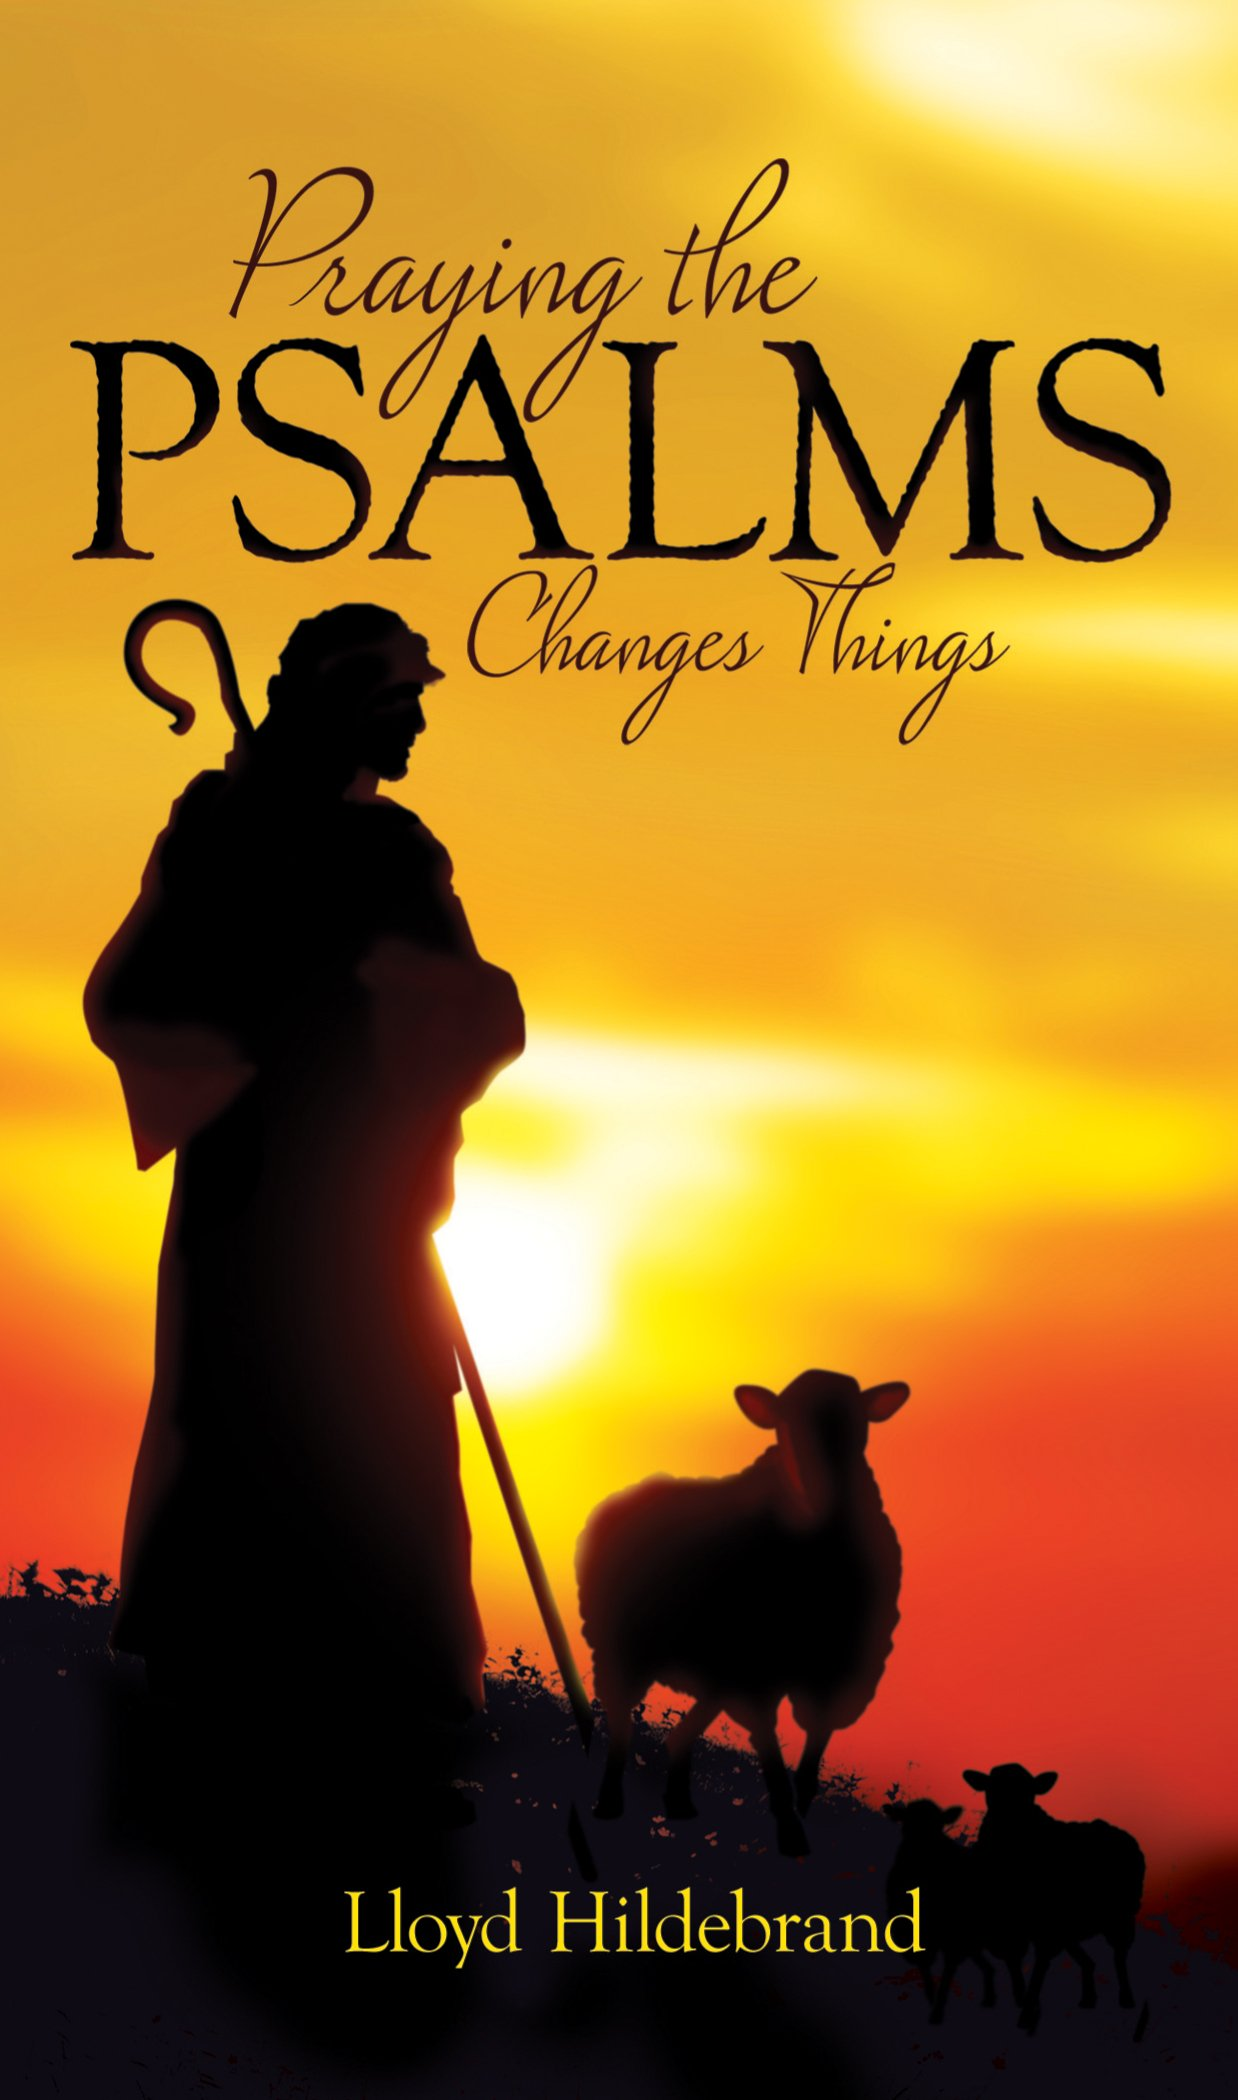 Praying The Psalms Changes Things: Lloyd Hildebrand: 9781610361262